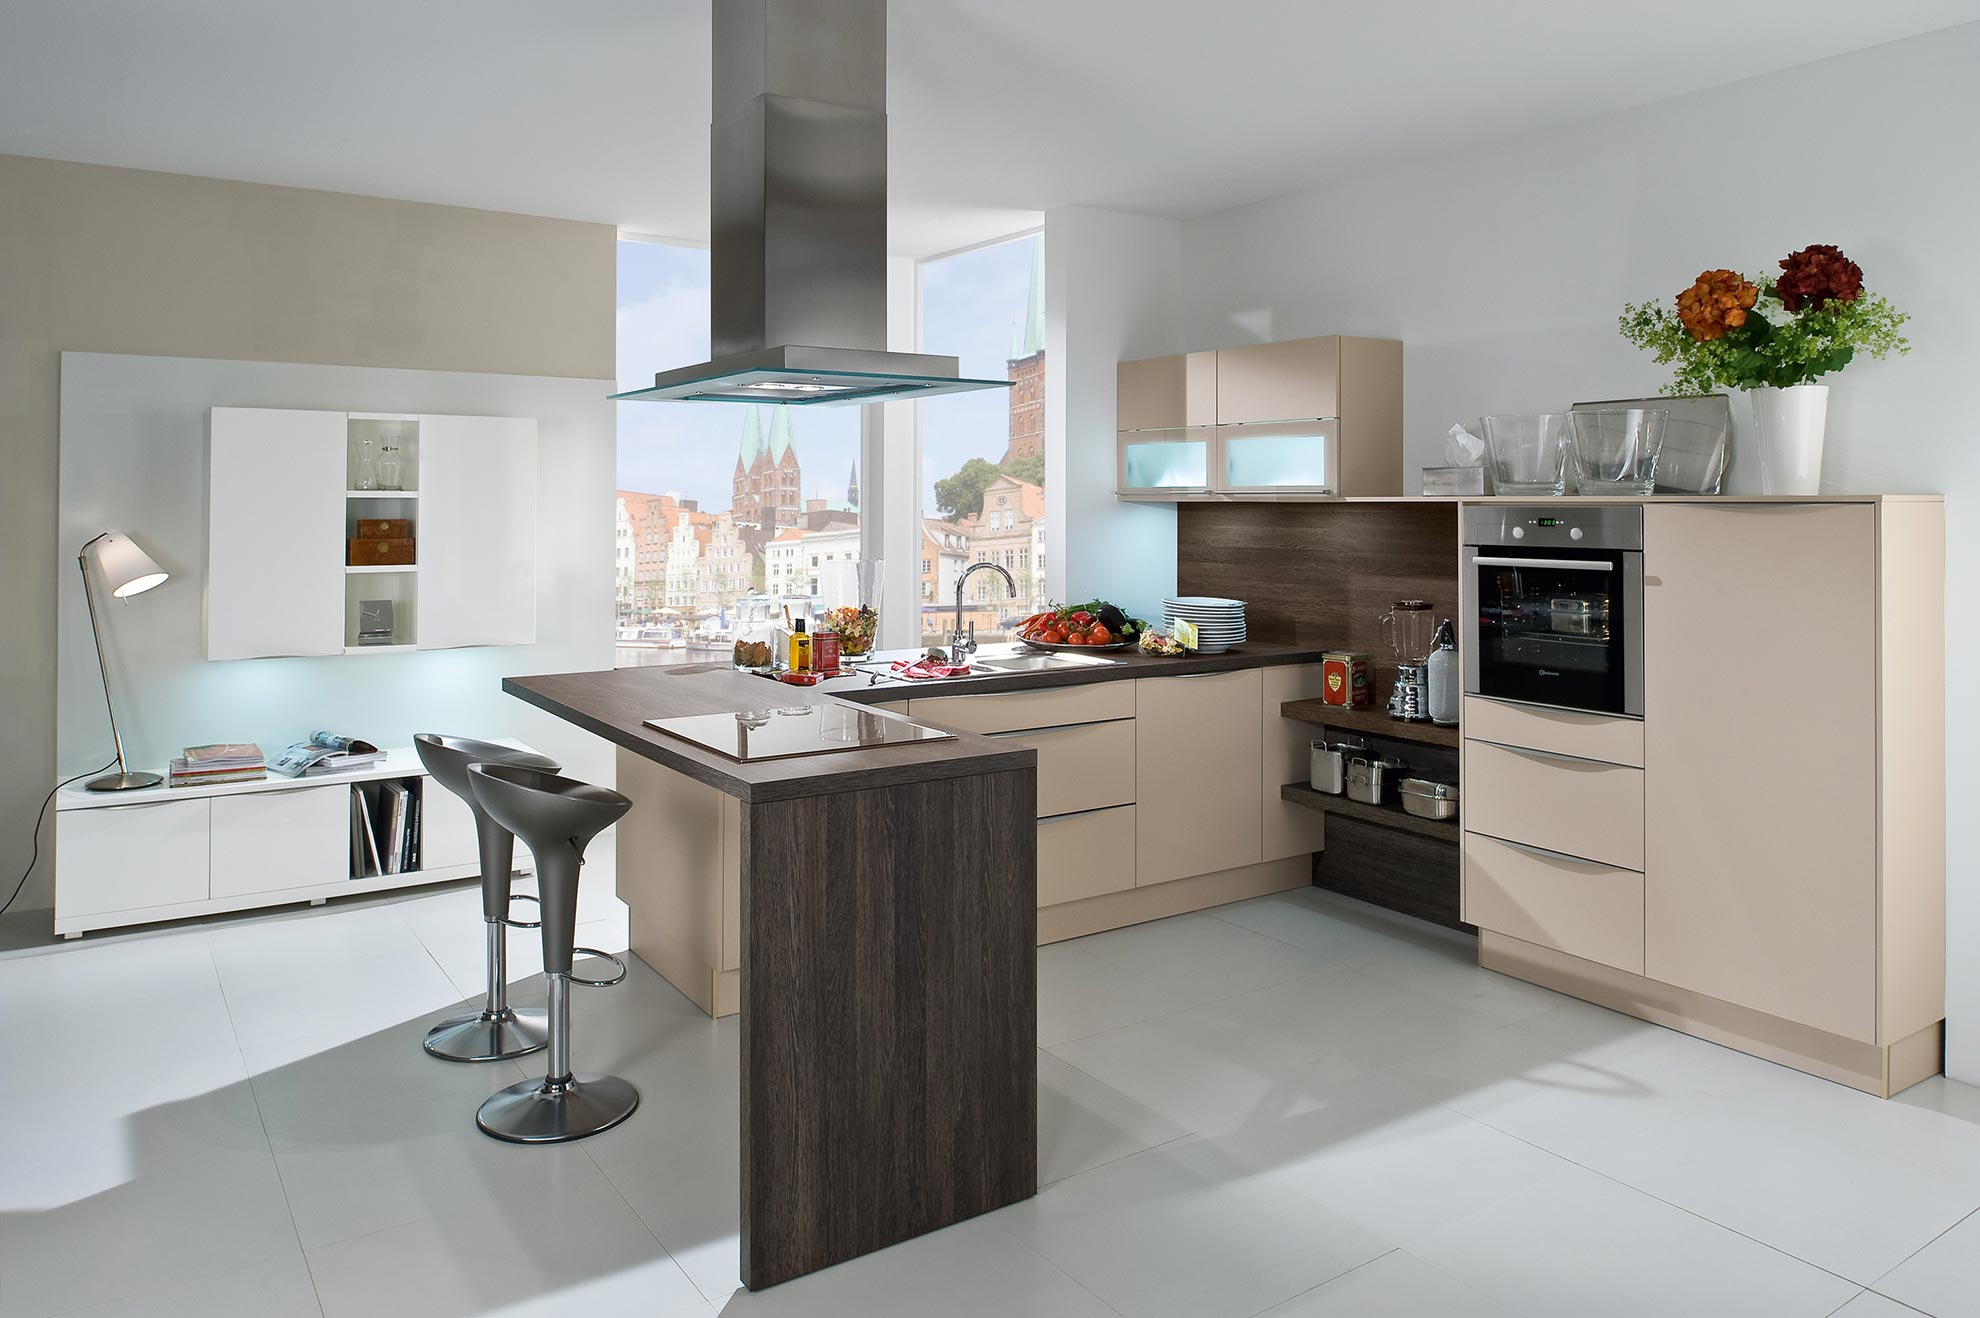 Kitchens bedford hertfordshire bedfordshire fitted for Cuisine equipee